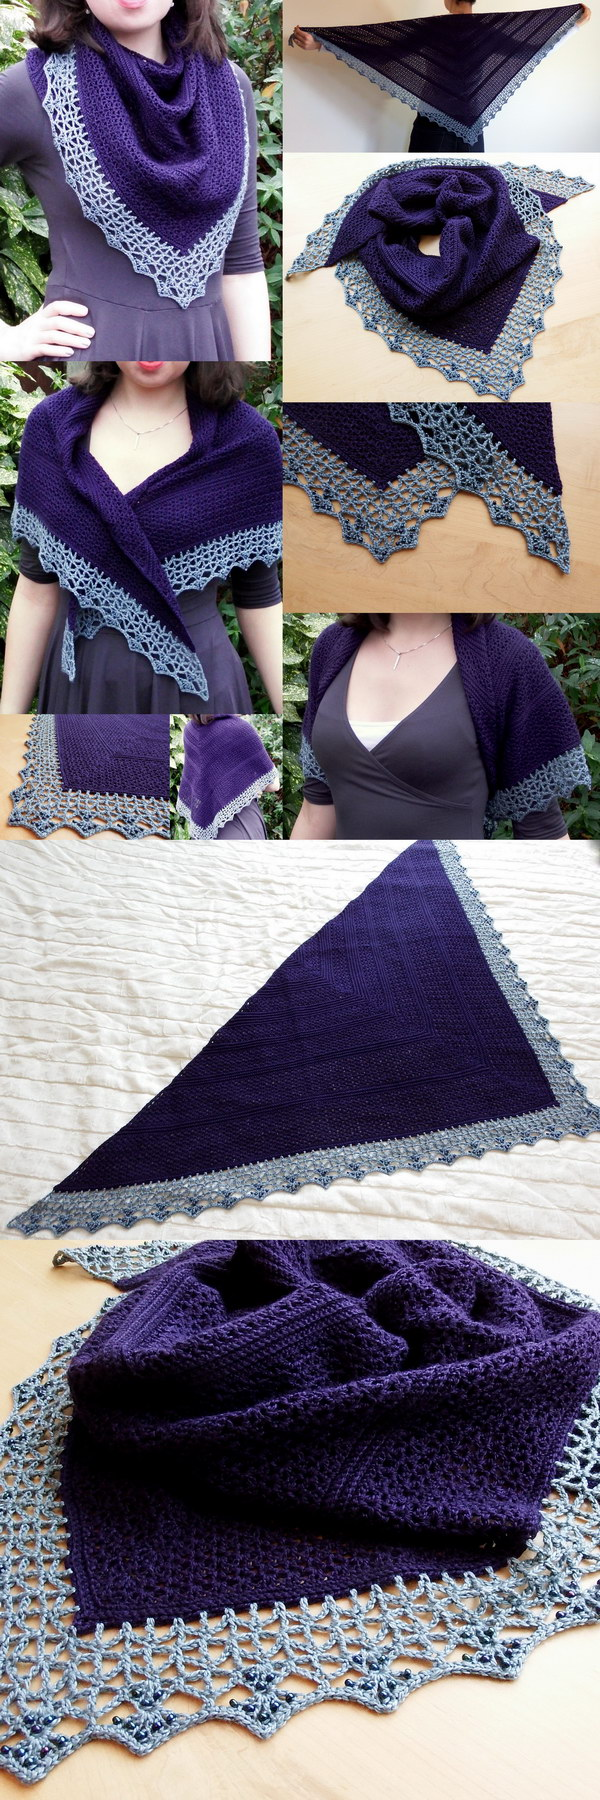 Atlantic Lace Shawl With Beaded Edge.